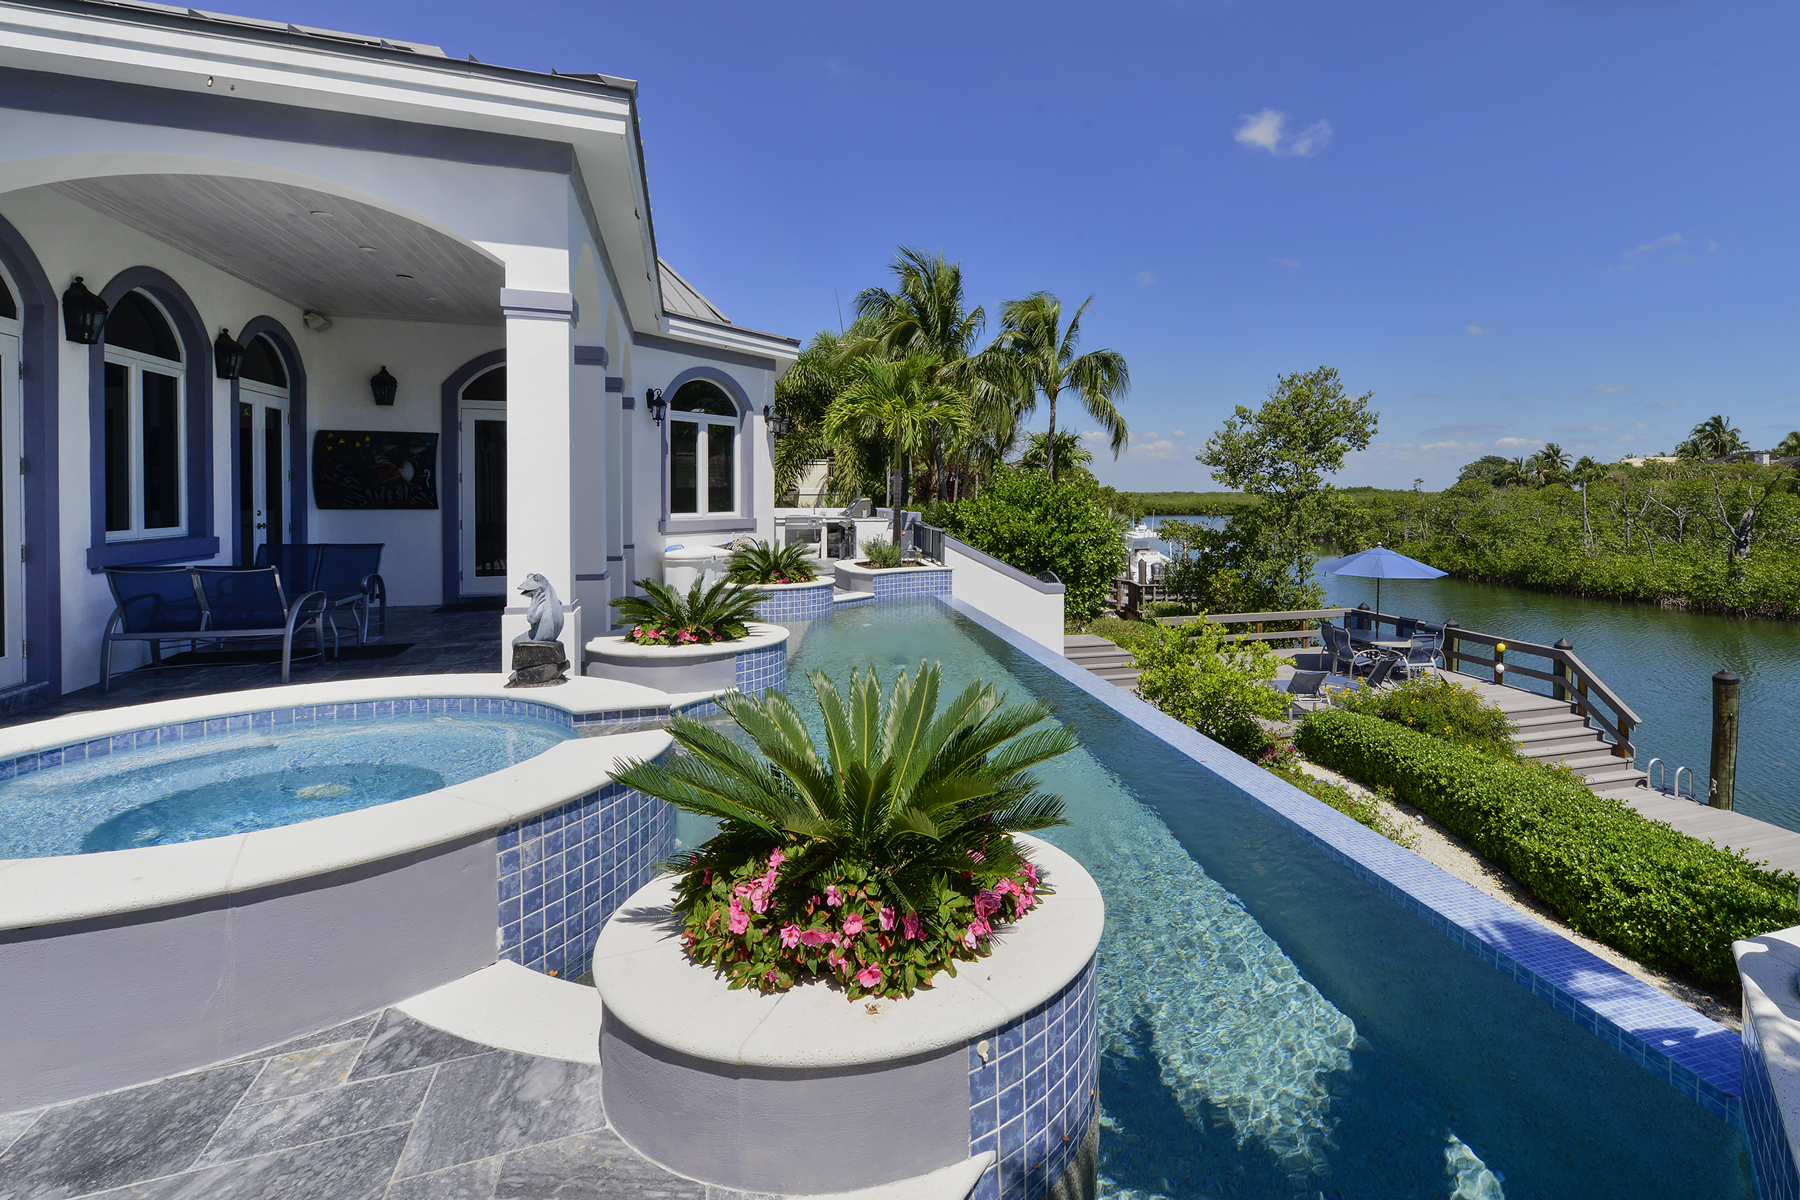 Tek Ailelik Ev için Satış at Custom Built Waterfront Home at Ocean Reef 17 North Pelican Drive Ocean Reef Community, Key Largo, Florida, 33037 Amerika Birleşik Devletleri